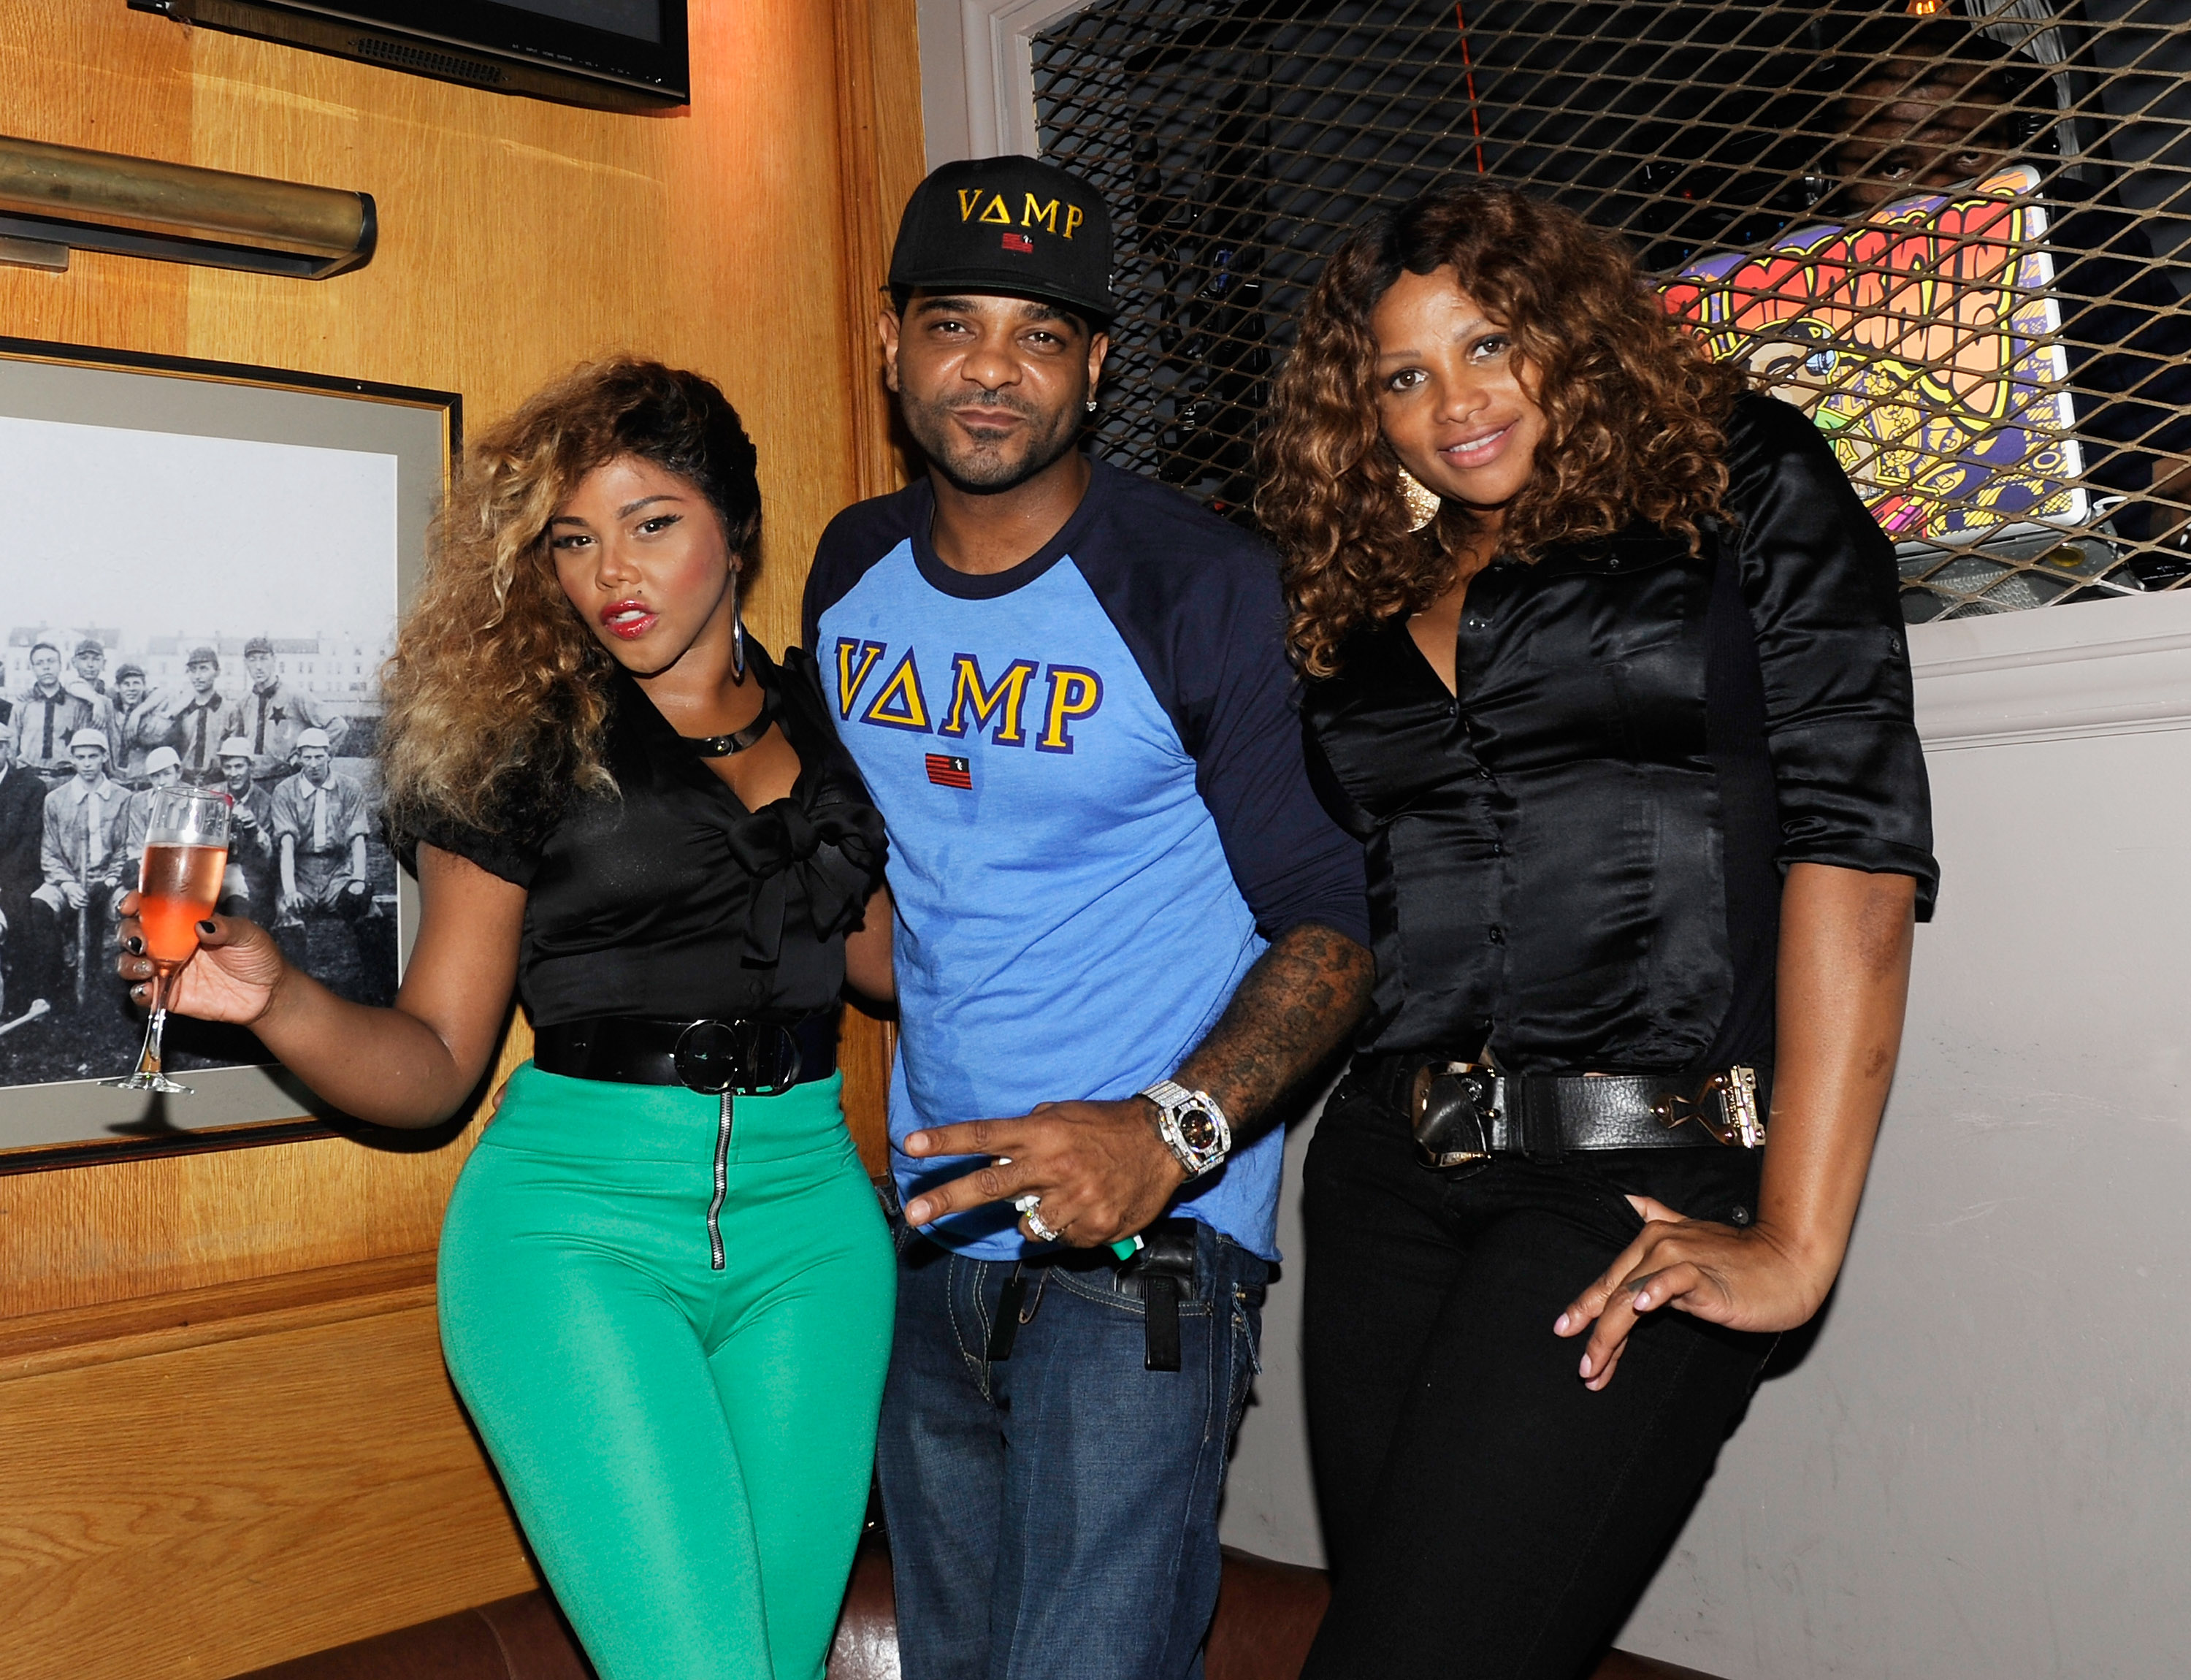 New Party s Now That s Old School Lil Kim Parties With Pepa